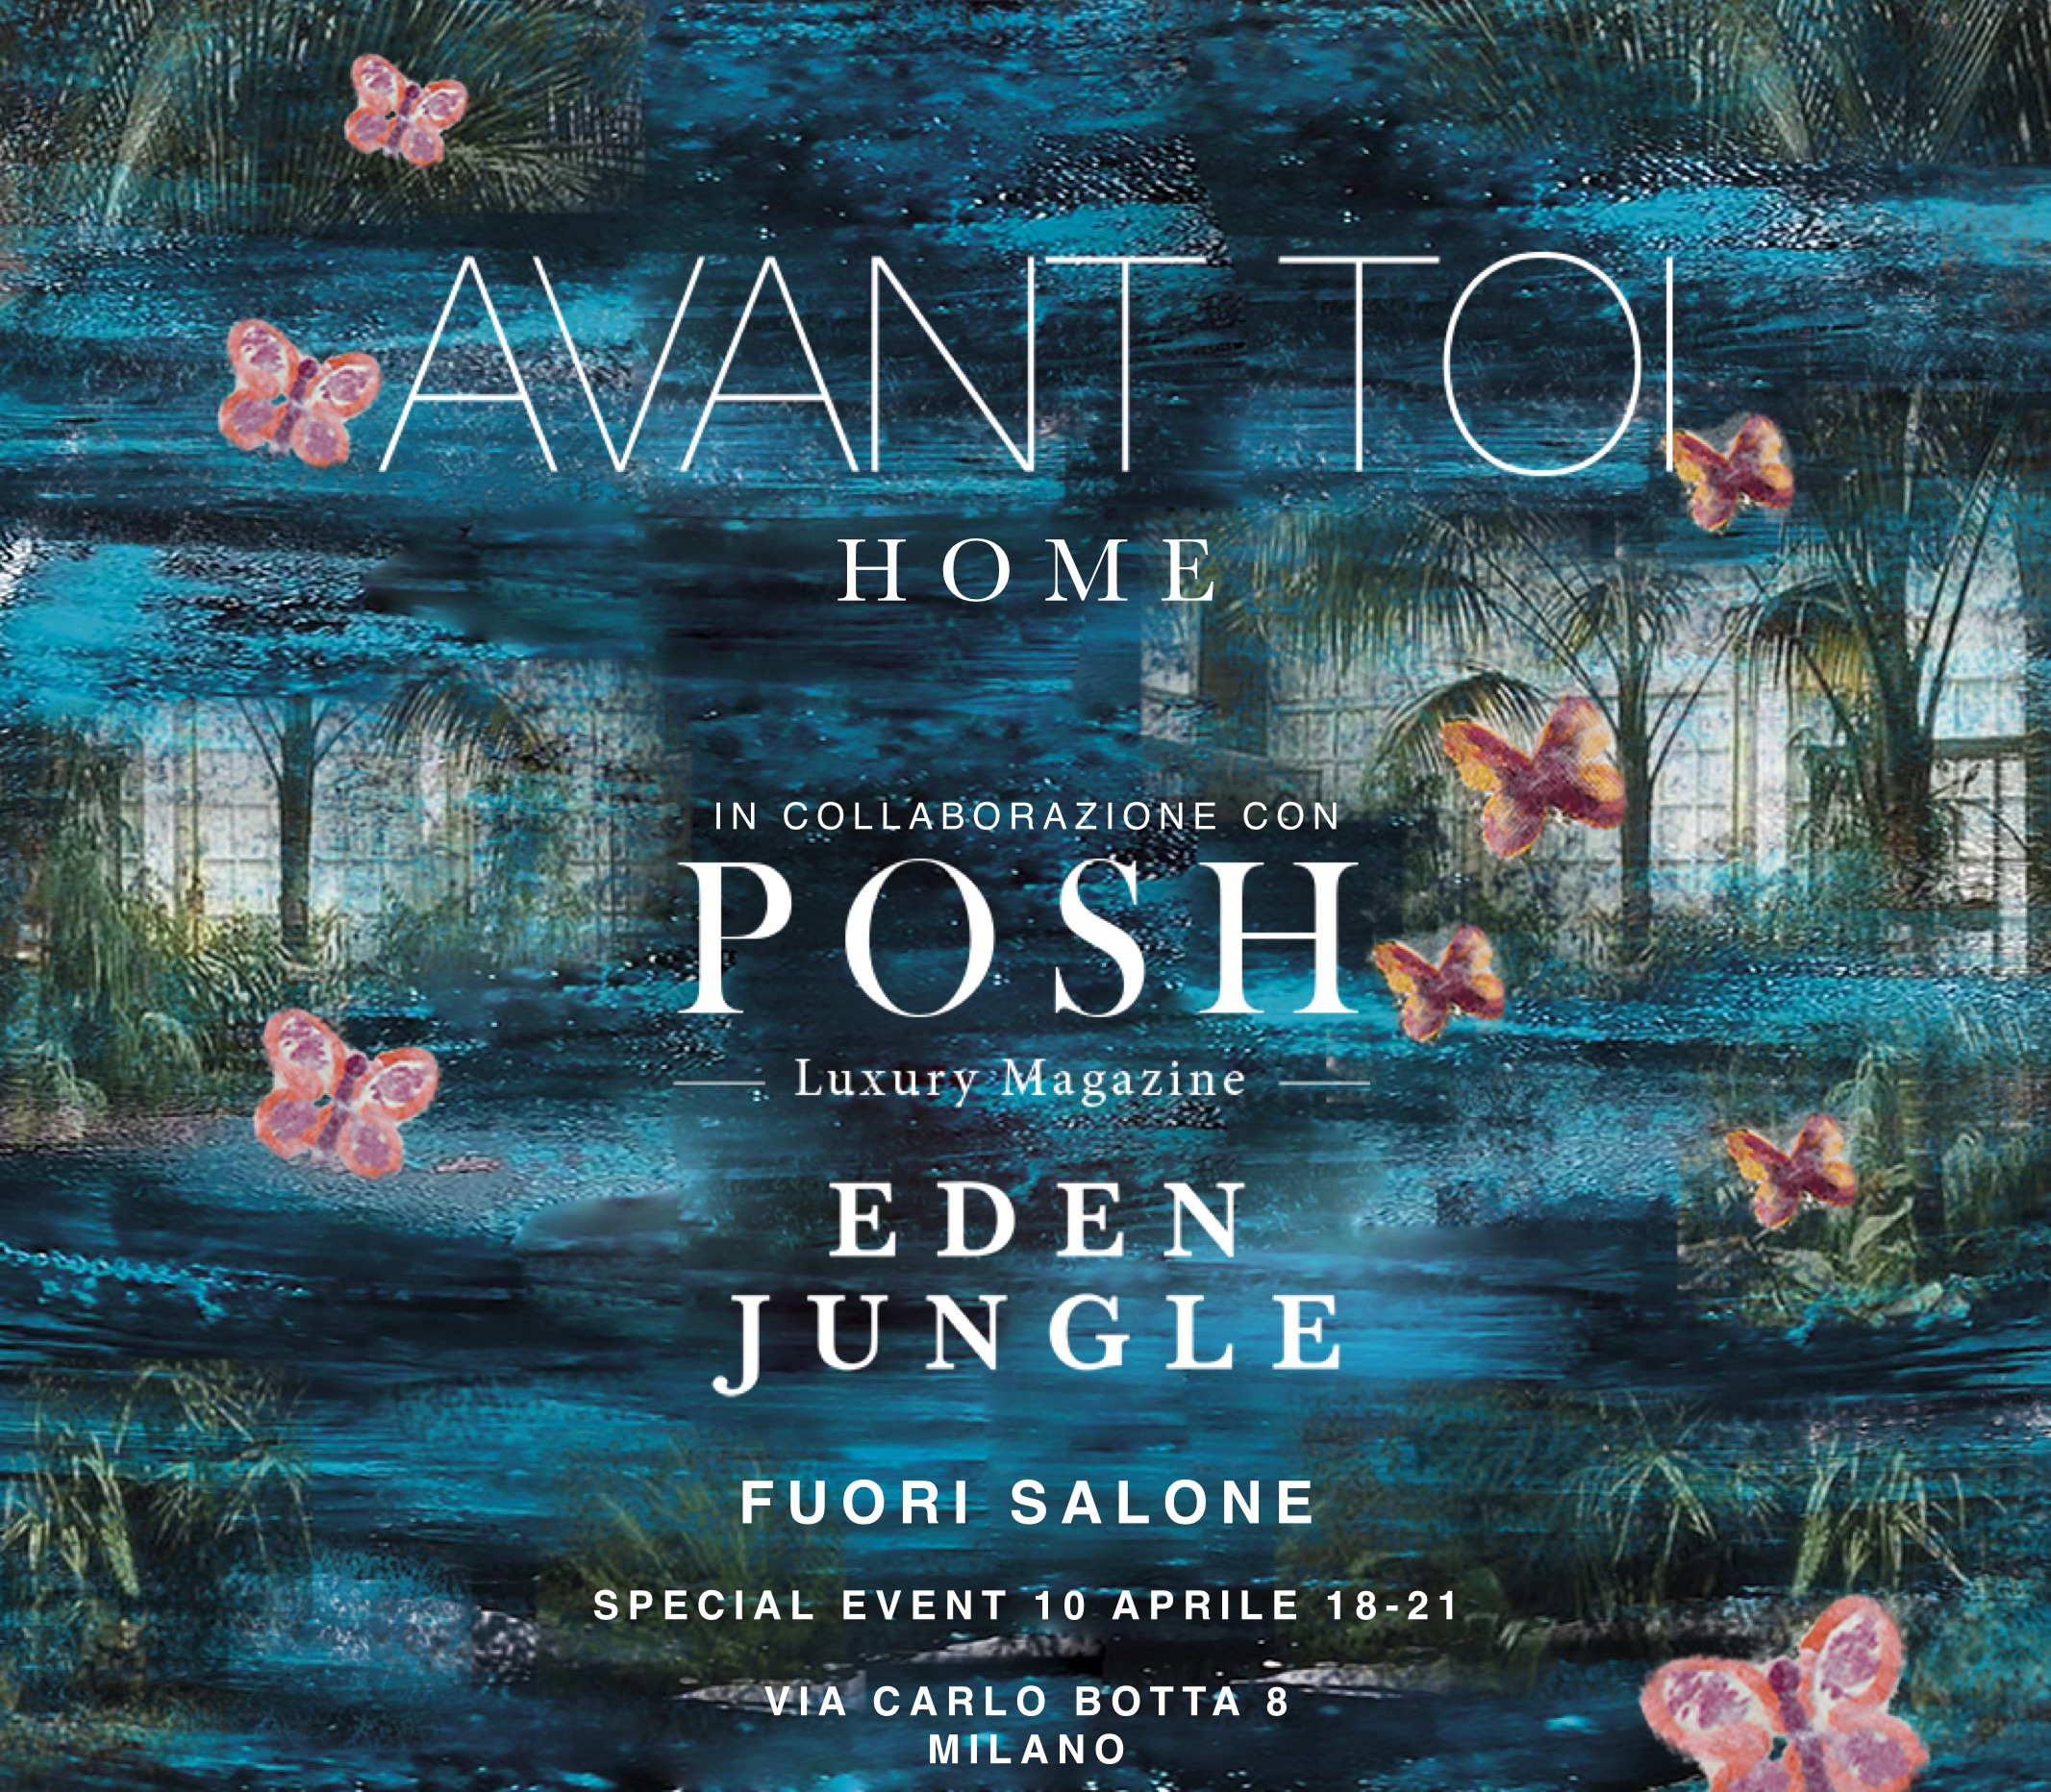 Milan Design Week: Eden Jungle event for Avant Toi